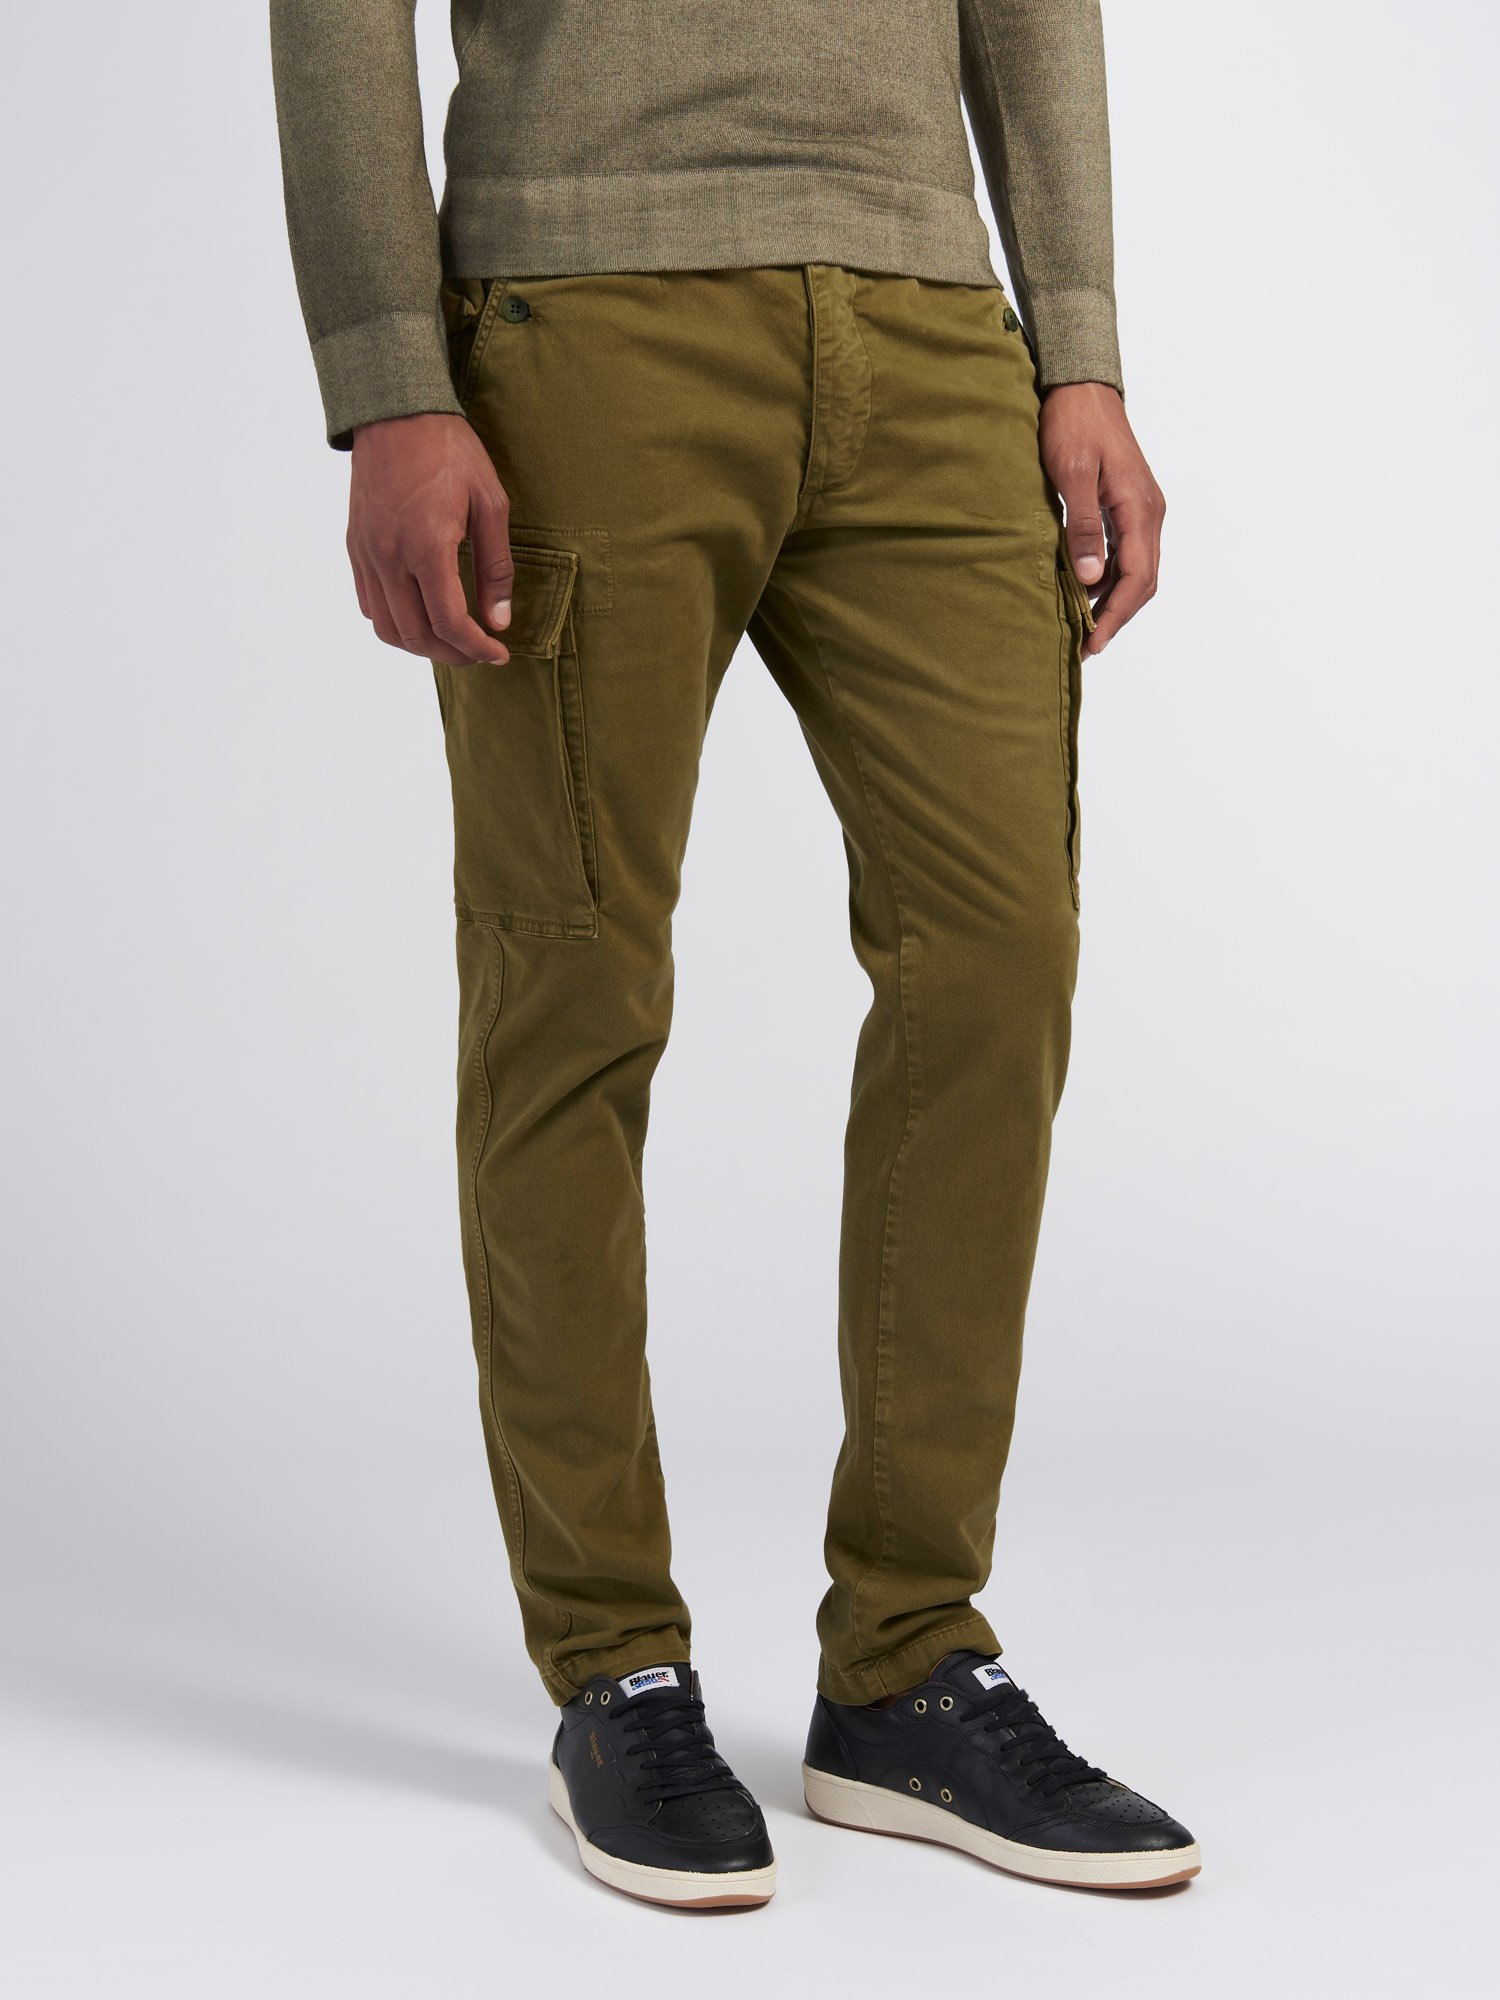 Blauer - PANTALON STRETCH TEINT EN PIÈCE - Light Military Green - Blauer